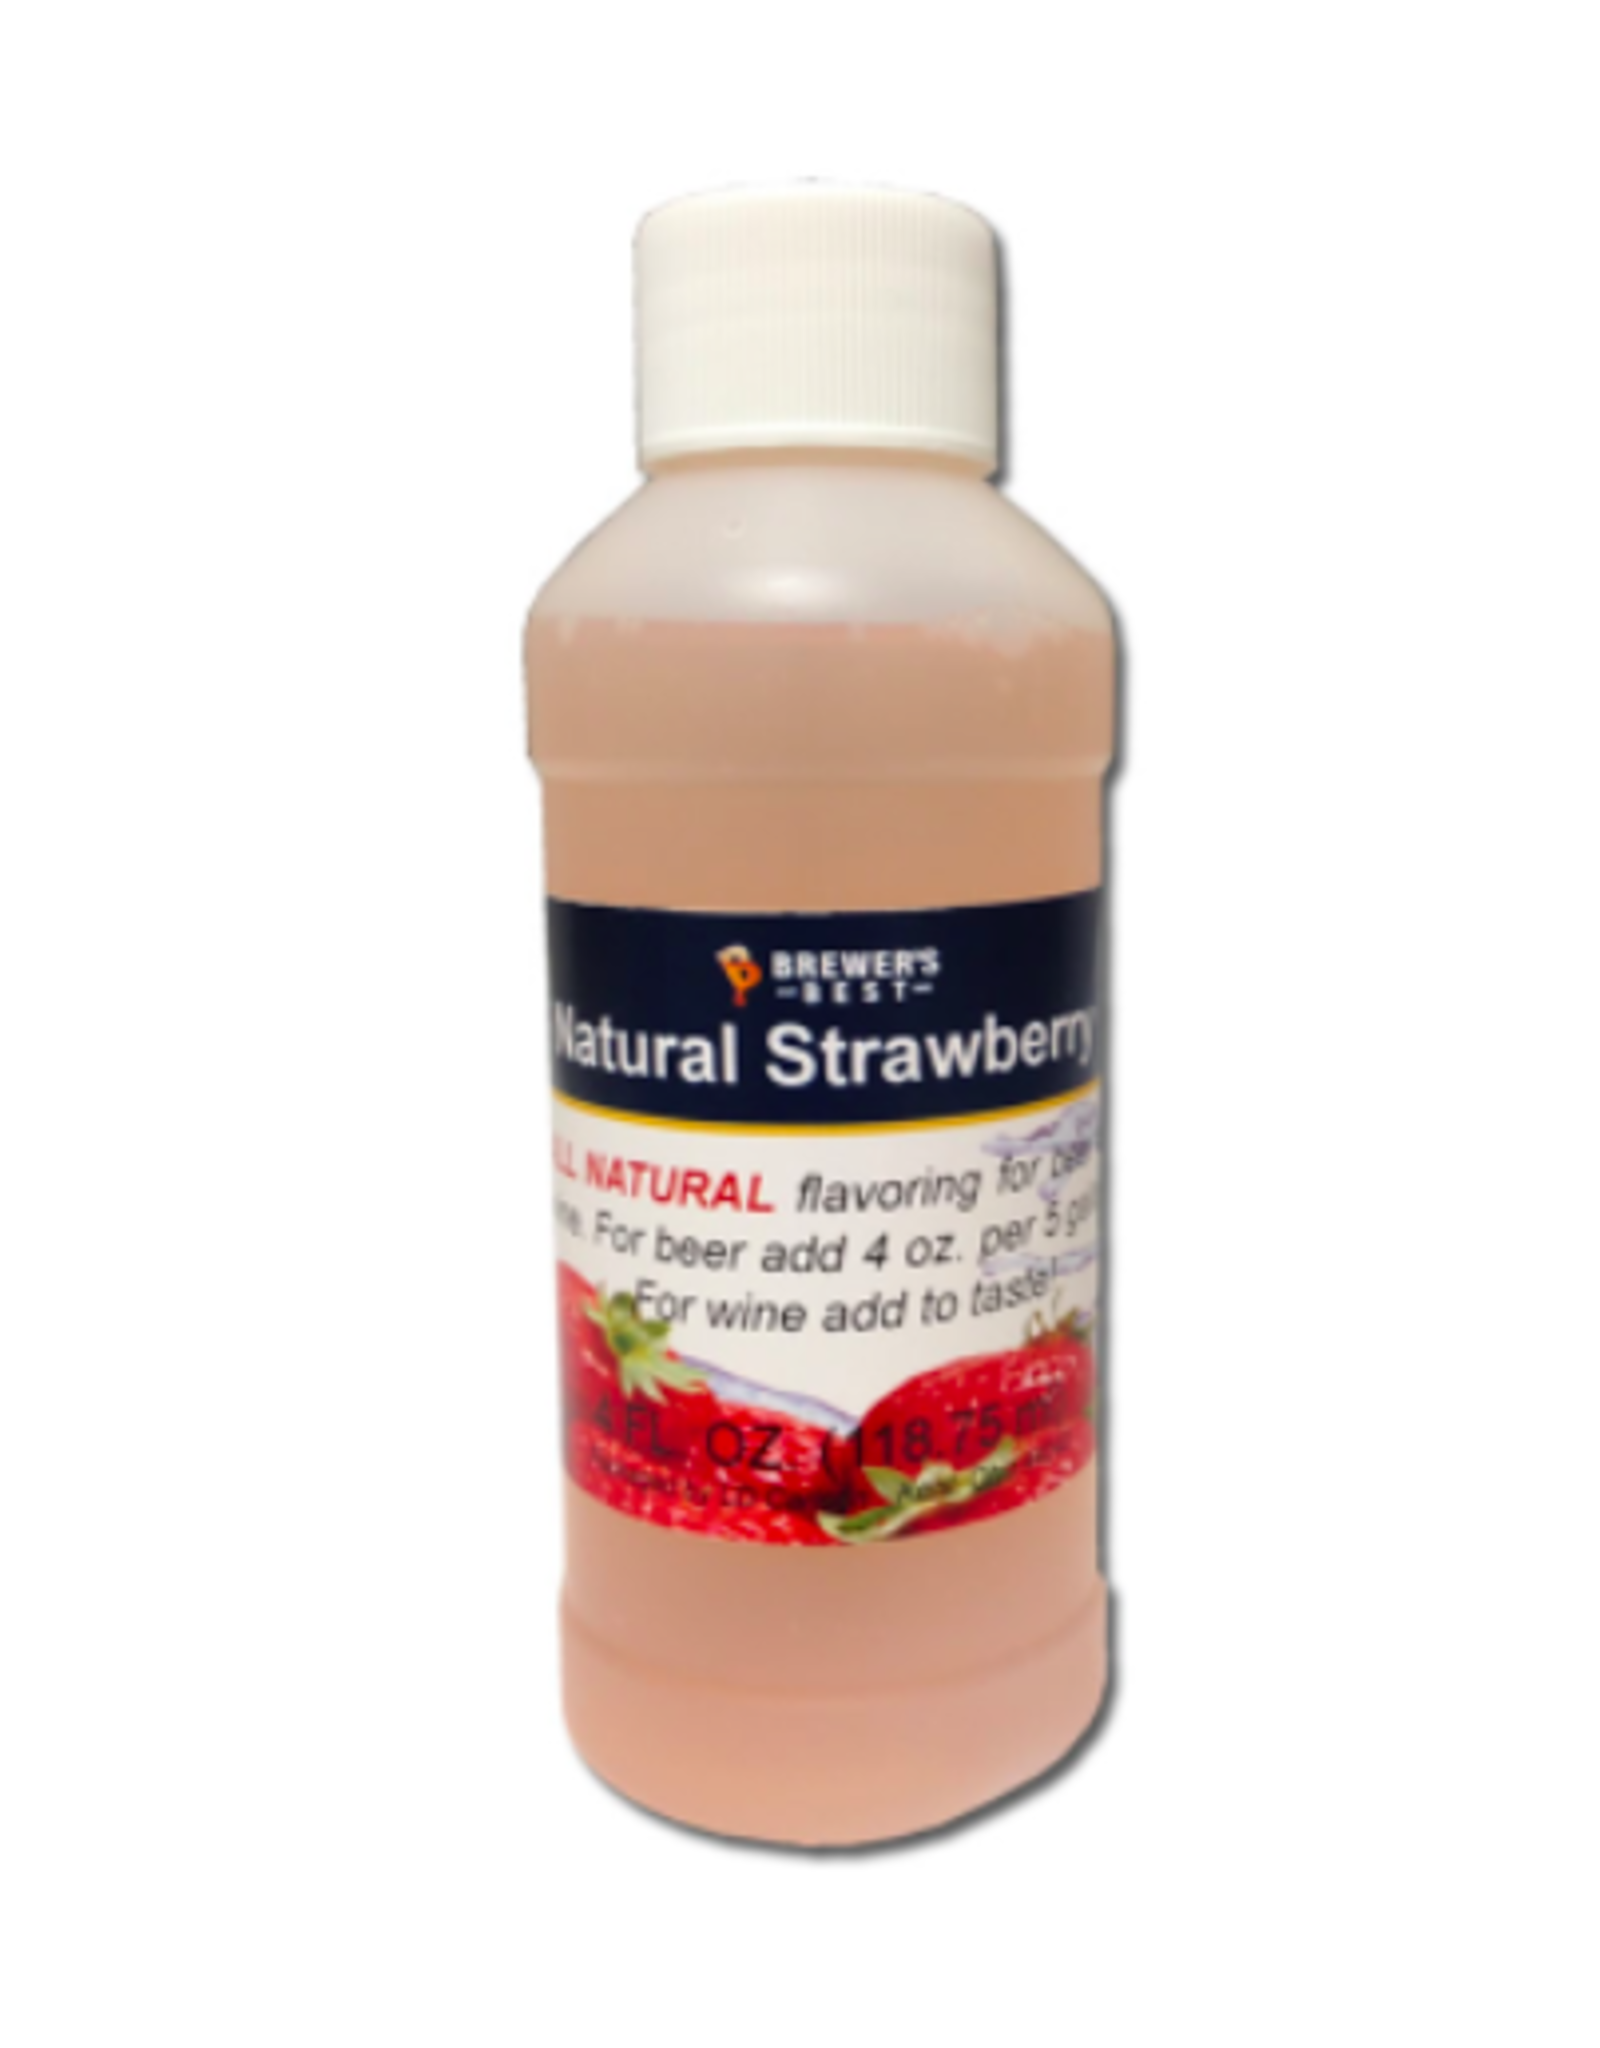 NATURAL STRAWBERRY FLAVORING